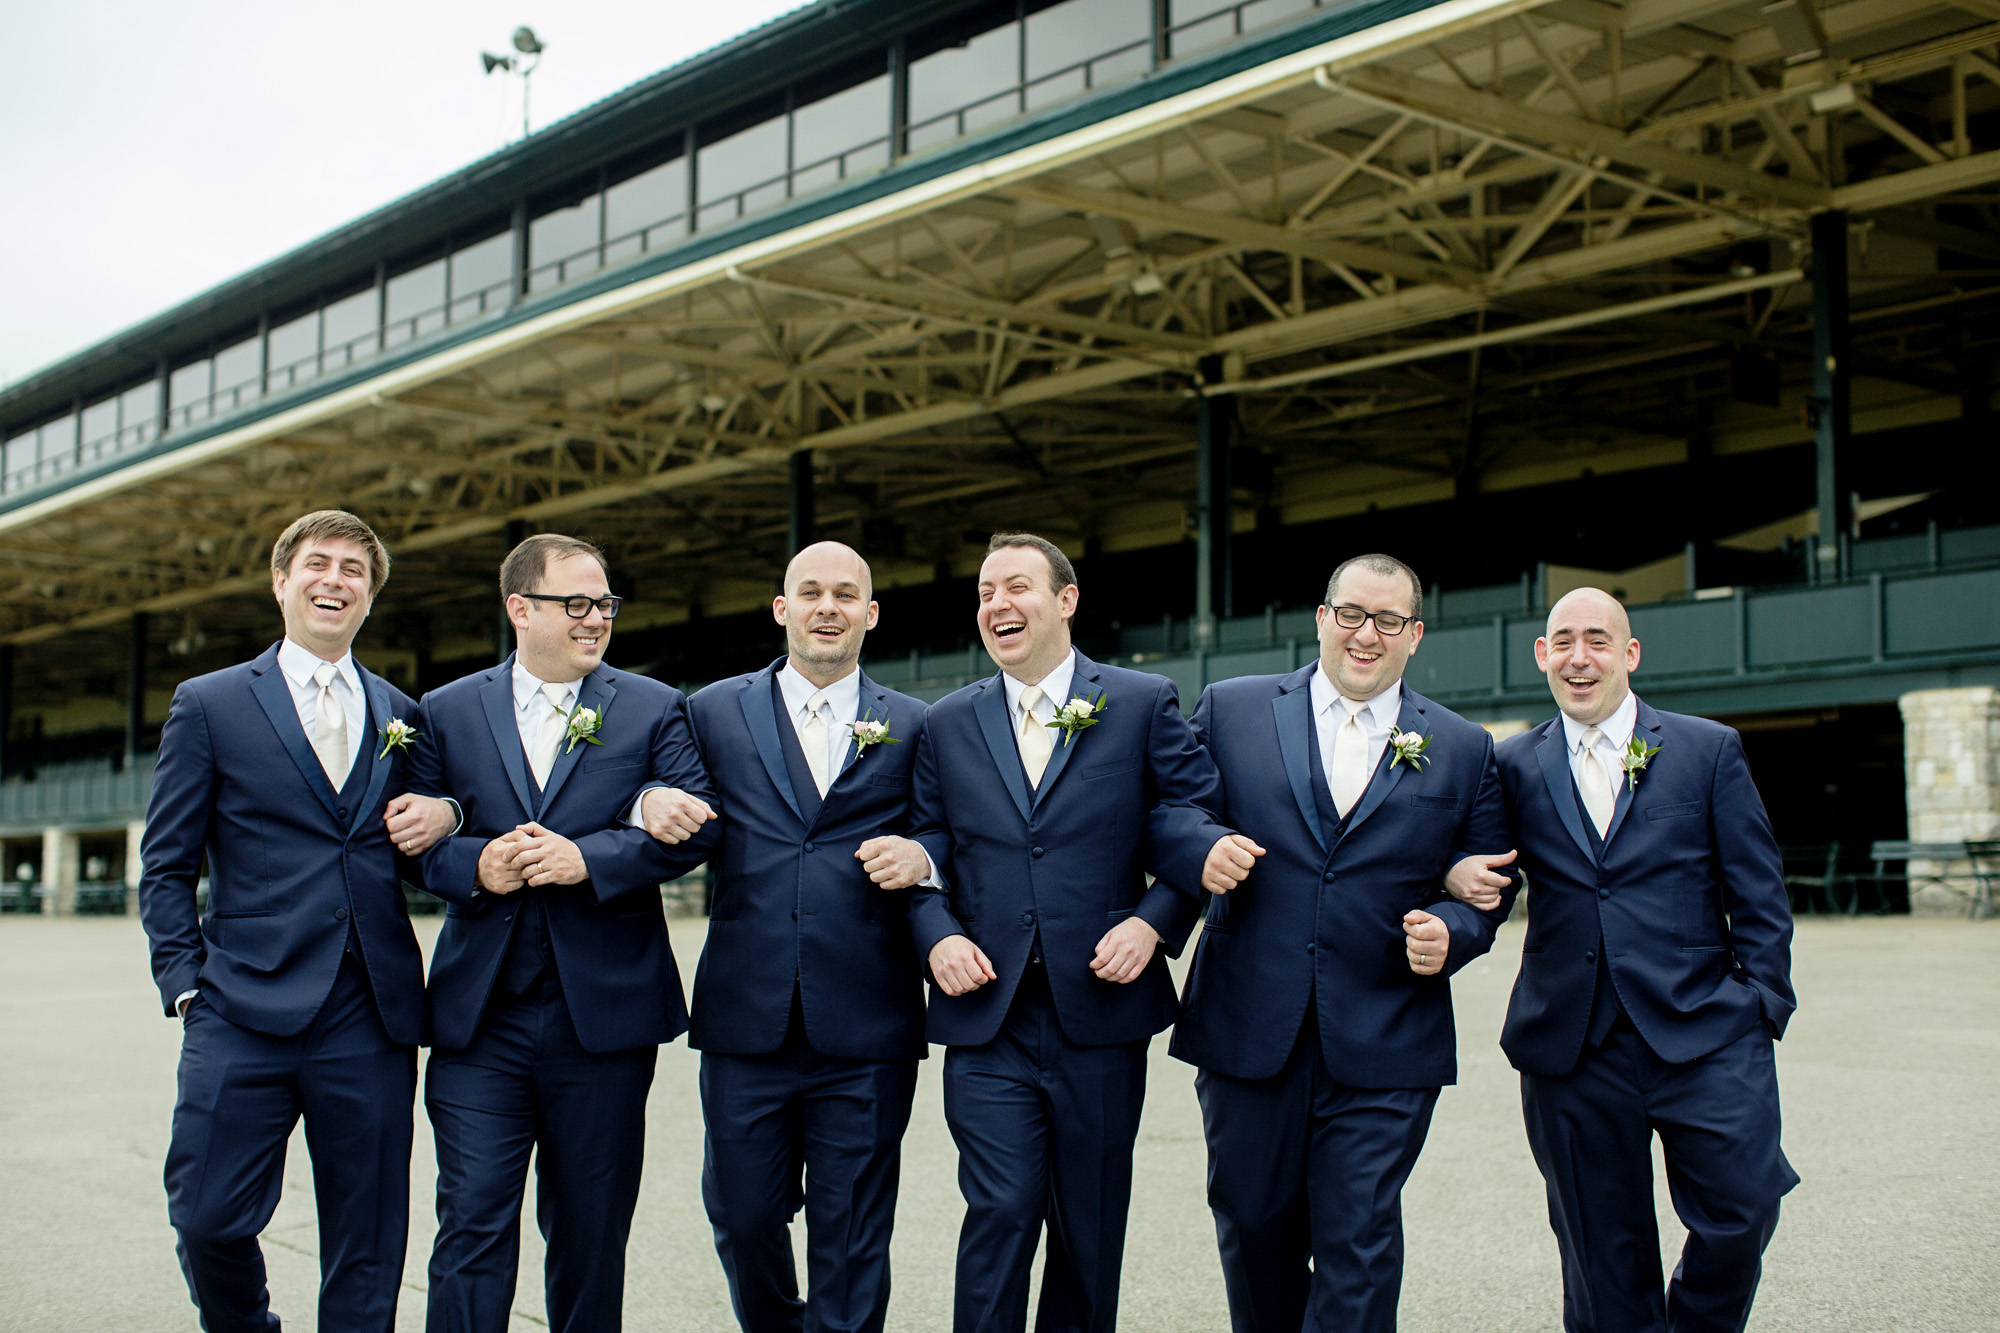 Seriously_Sabrina_Photography_Lexington_Kentucky_Downtown_Keeneland_Clubhouse_Wedding_Spitzer_63.jpg